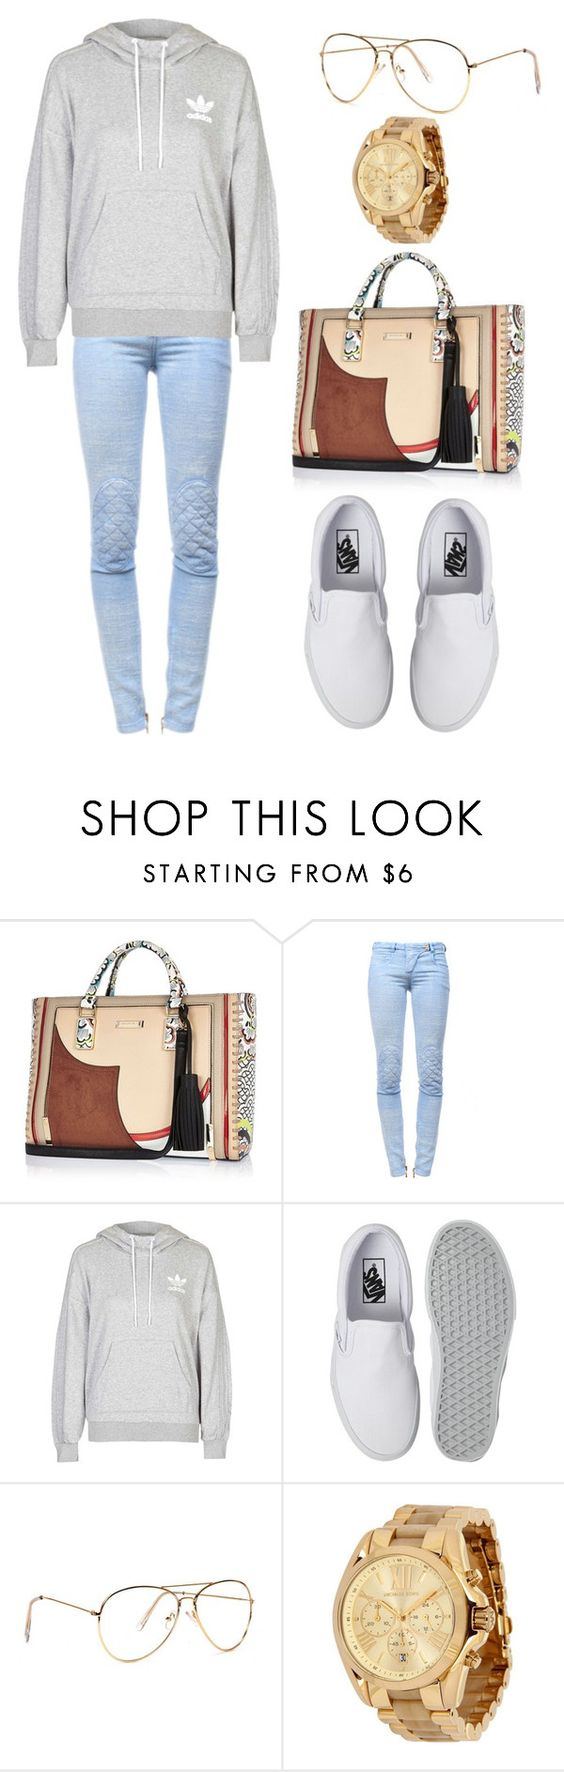 """""""Untitled #2504"""" by princessceairra ❤ liked on Polyvore featuring River Island, Balmain, adidas, Vans and Michael Kors"""